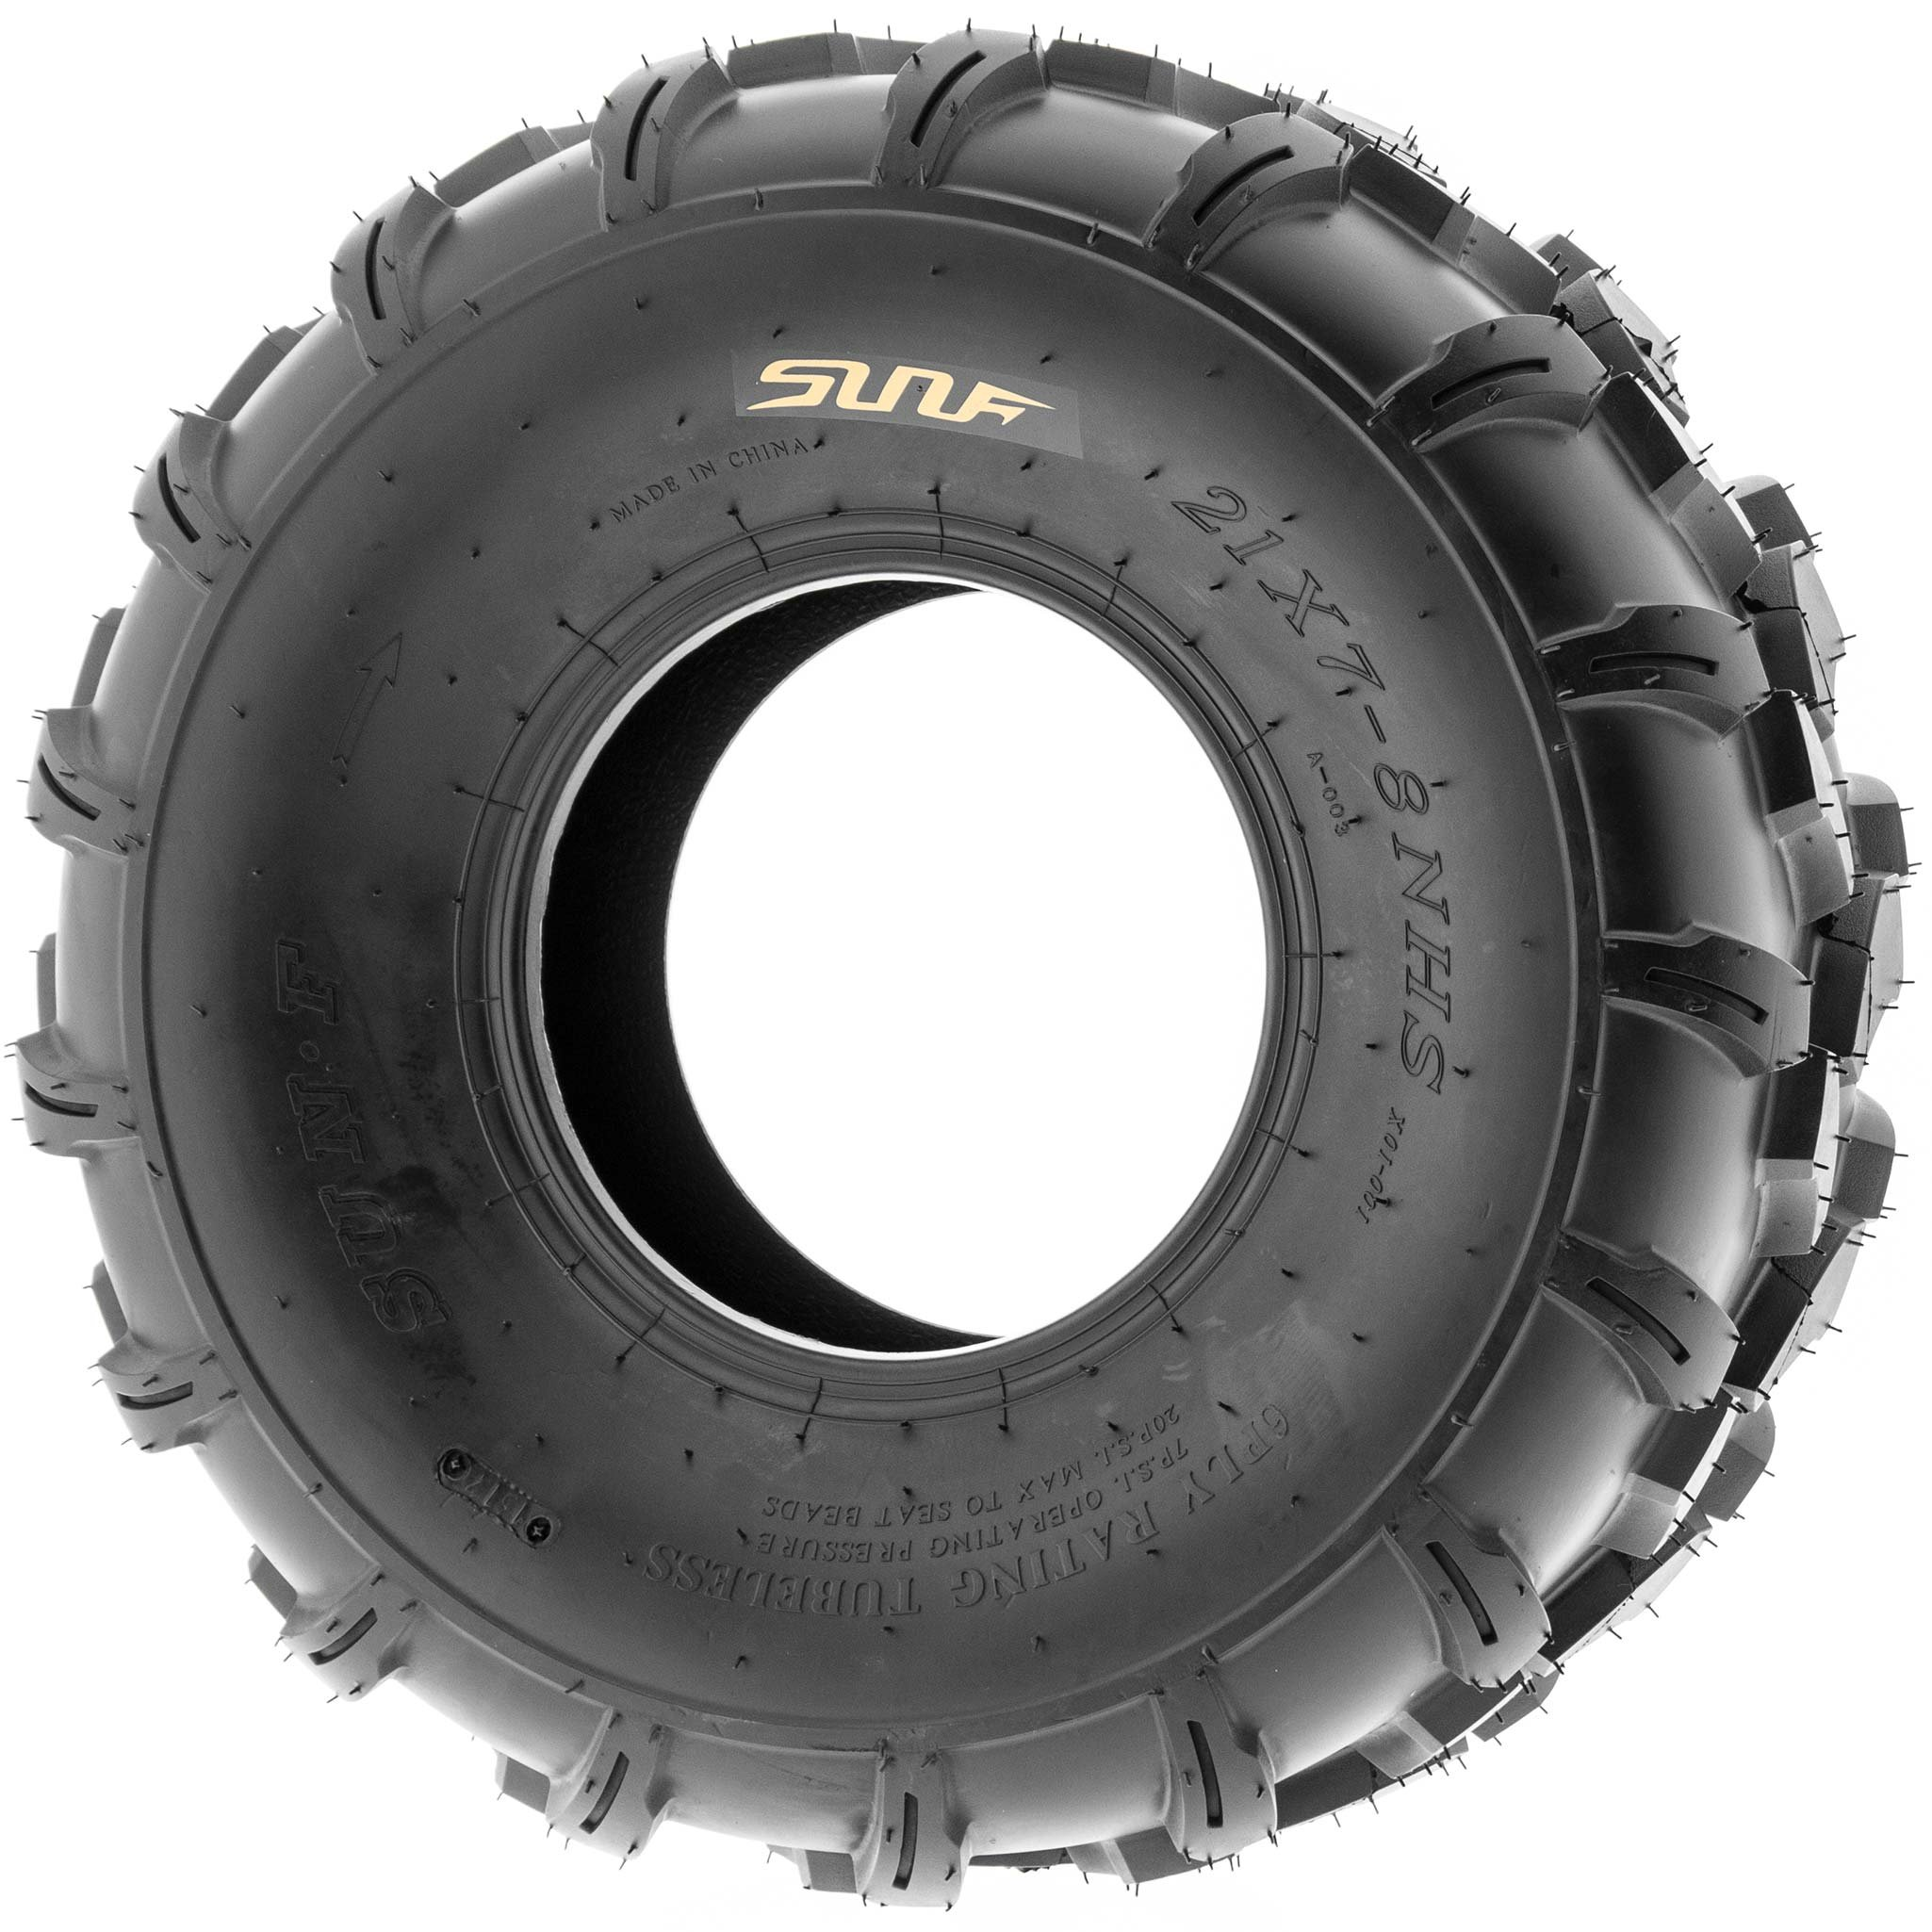 SunF 19x7-8 19x7x8 ATV UTV All Terrain Trail Replacement 6 PR Tubeless Tires A003, [Set of 2] by SUNF (Image #4)